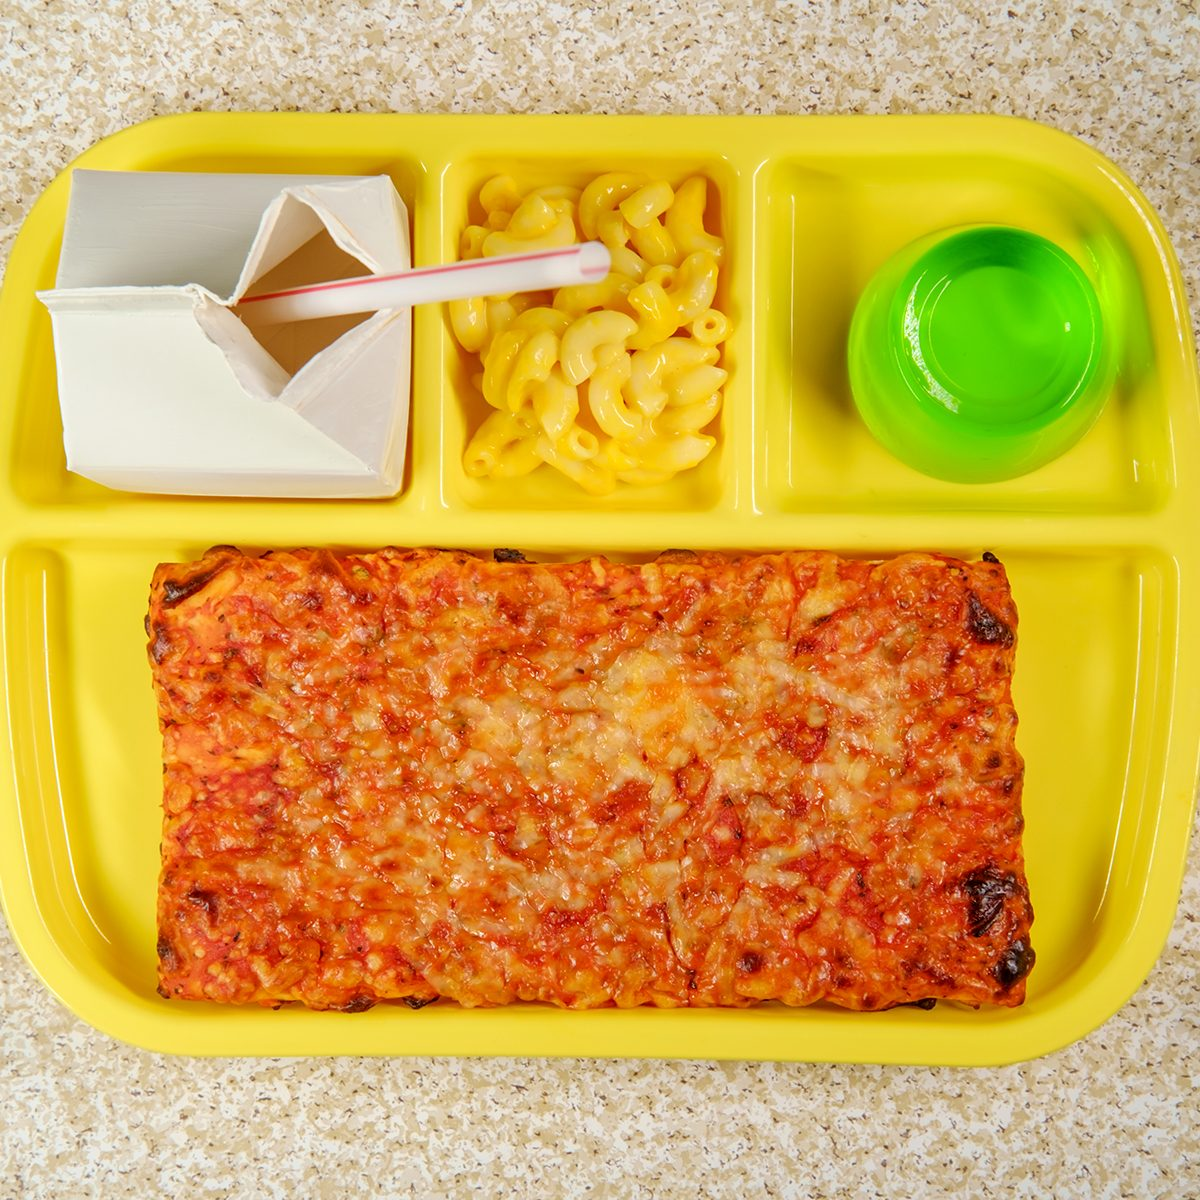 Grade school lunch tray with pizza with small carton of milk mac-n-cheese and green gelatin for dessert